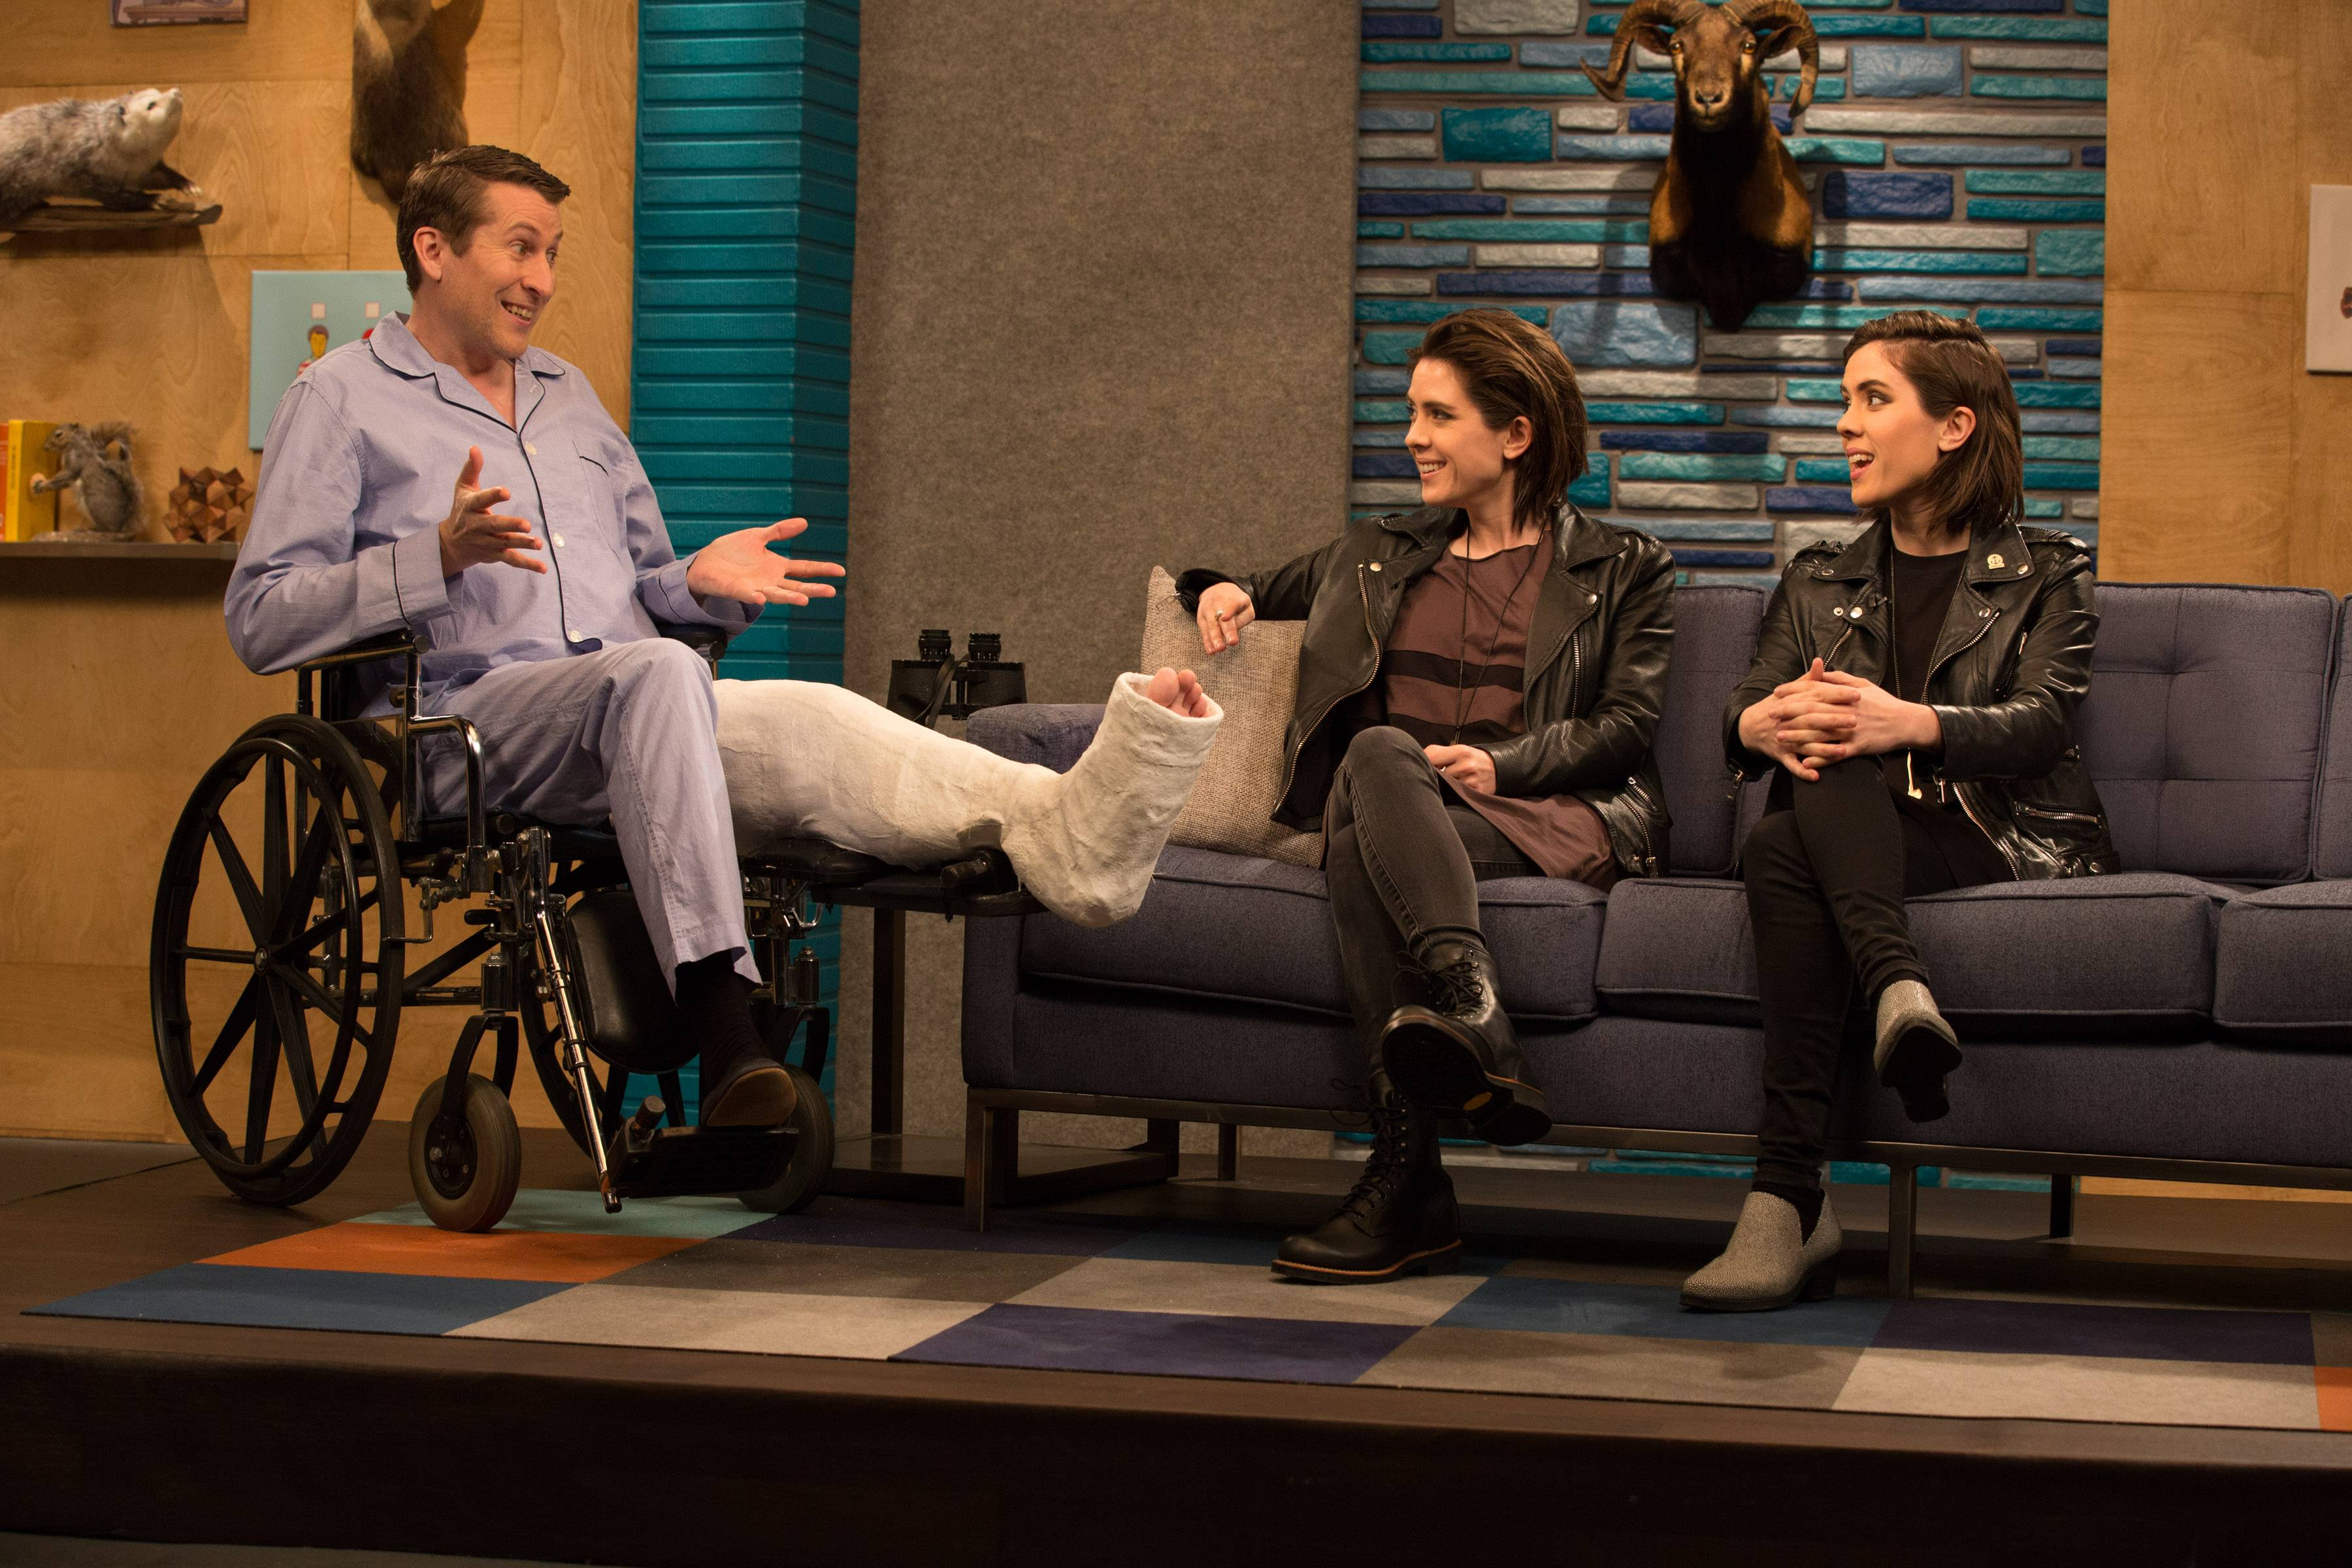 Scott Aukerman with Tegan and Sara on Comedy Bang Bang Season 5.